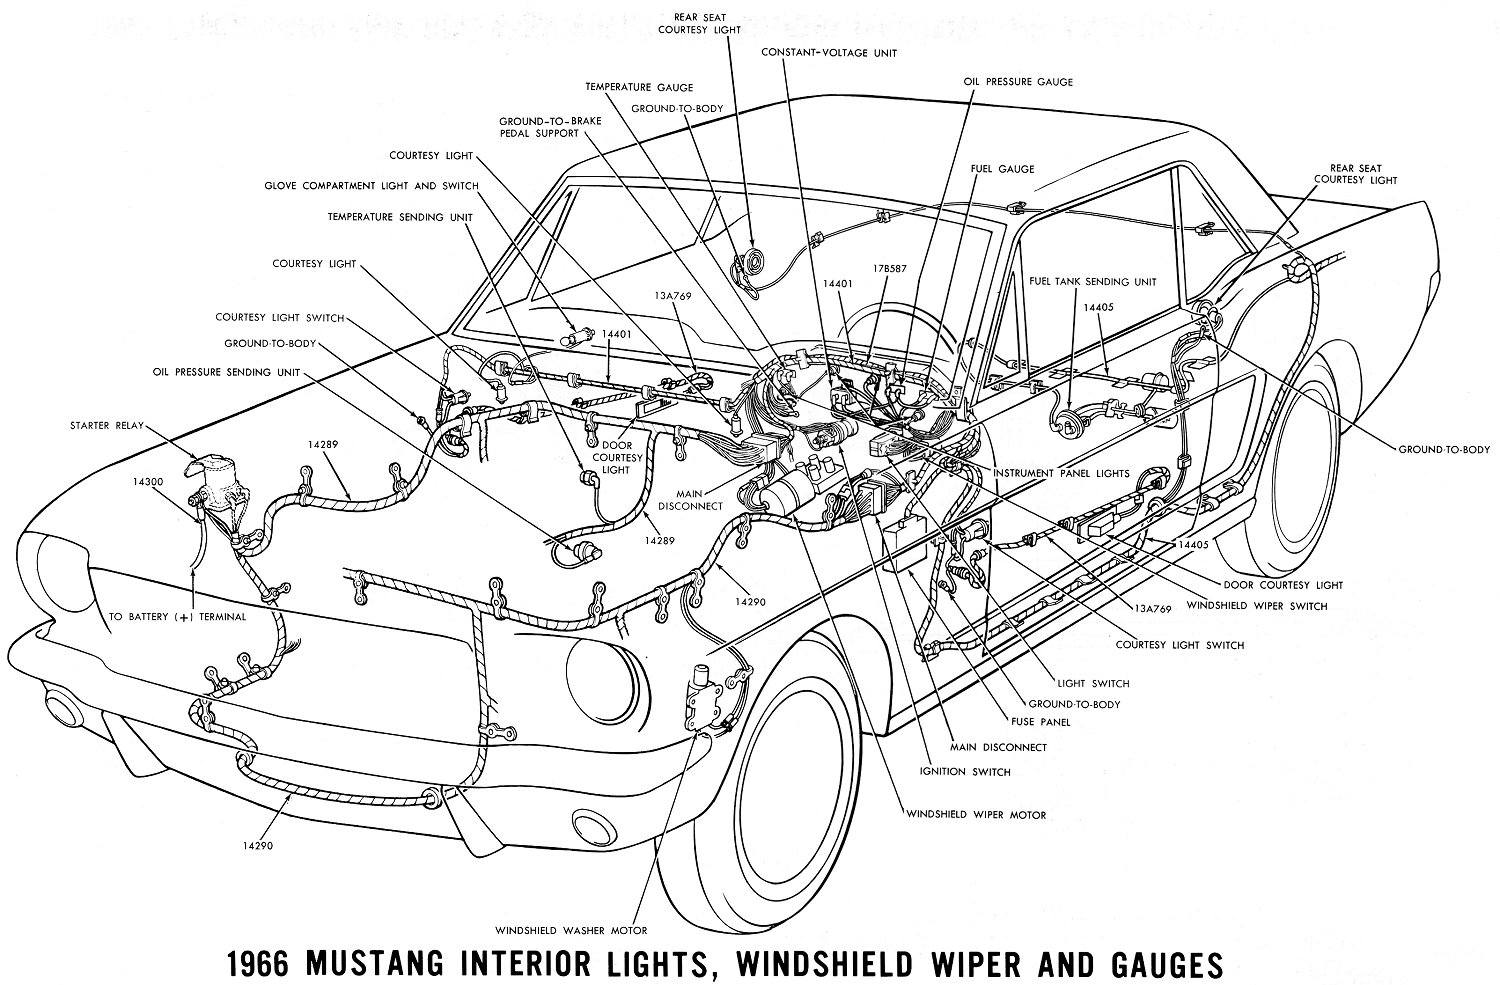 66 ford mustang wiring diagram human respiratory system for kids 1966 diagrams average joe restoration